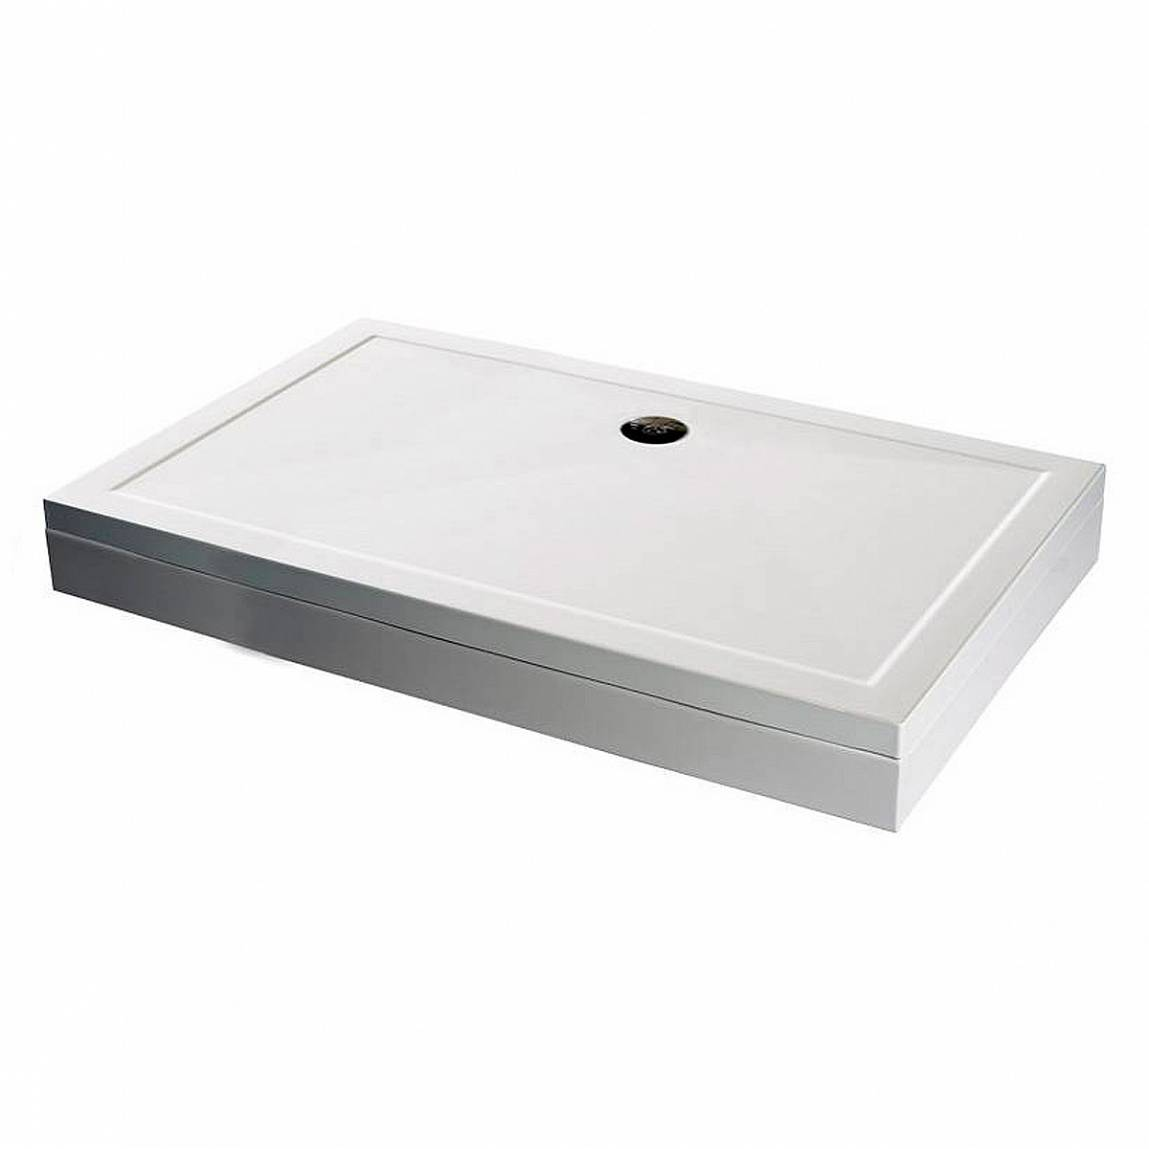 Image of Rectangular Stone Shower Tray & Riser Kit 800 X 700